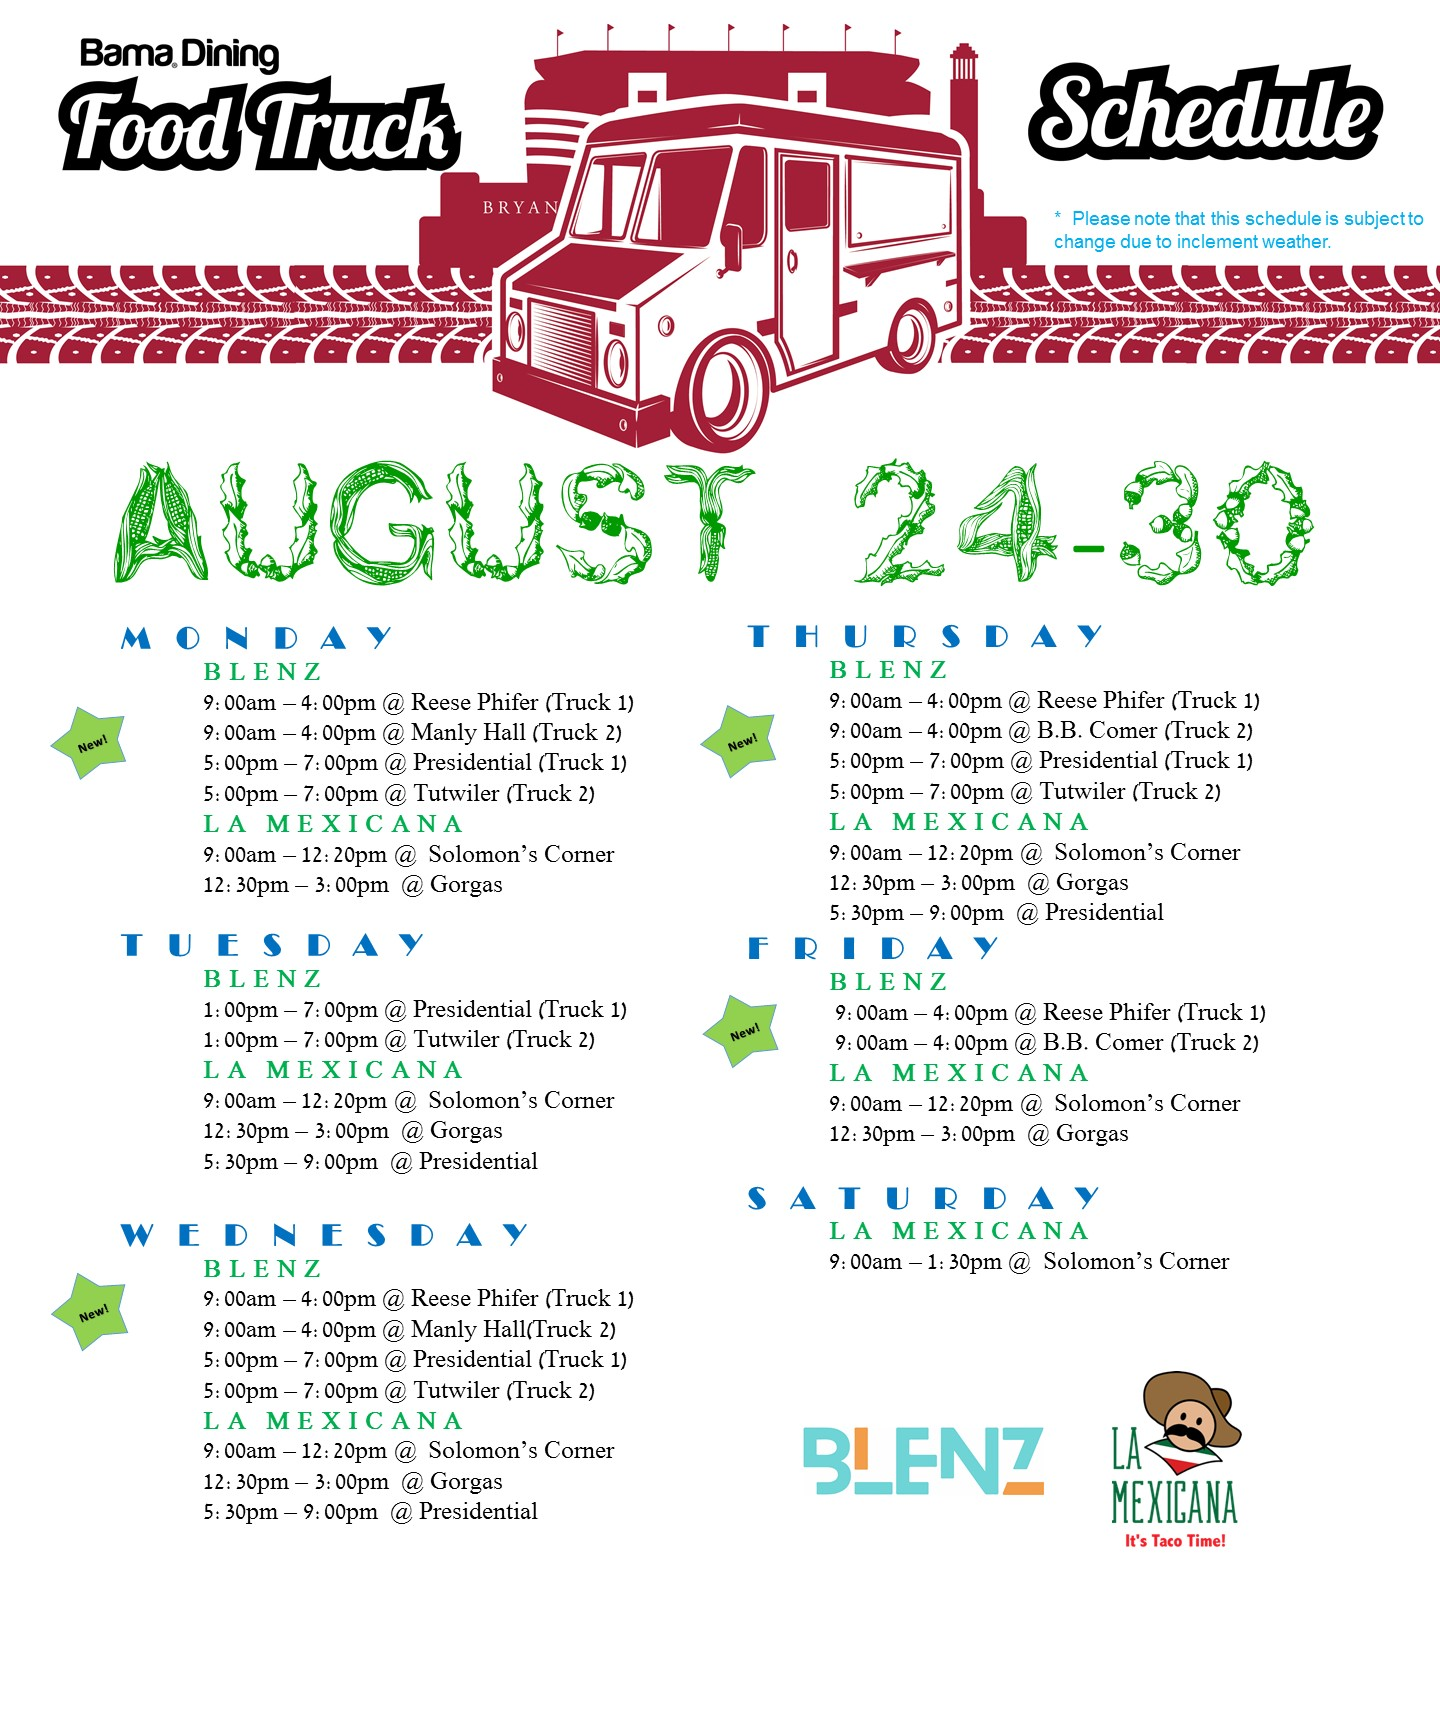 Bama Dining On Twitter Food Truck Schedule Update